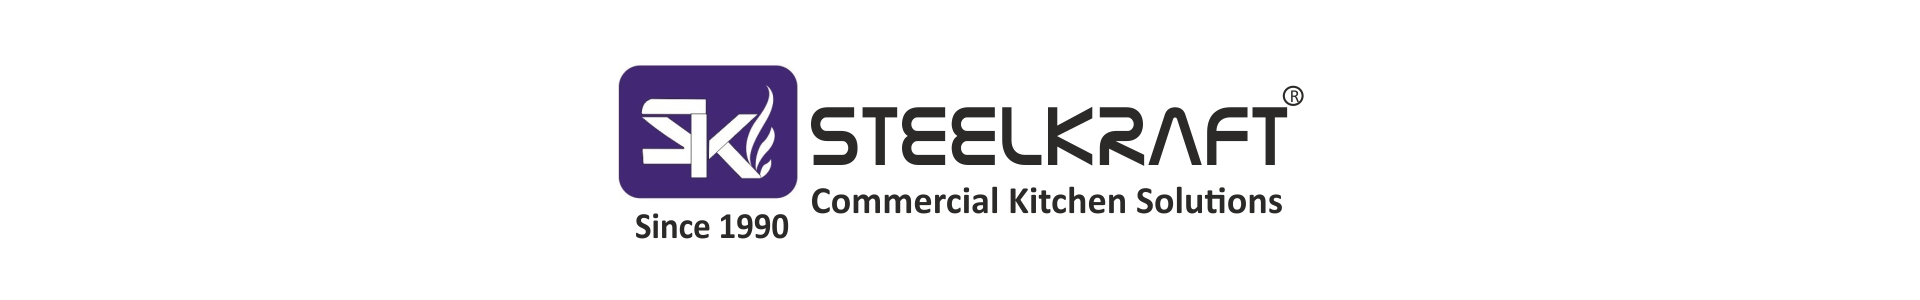 Steelkraft Hospitality Pvt. Ltd.